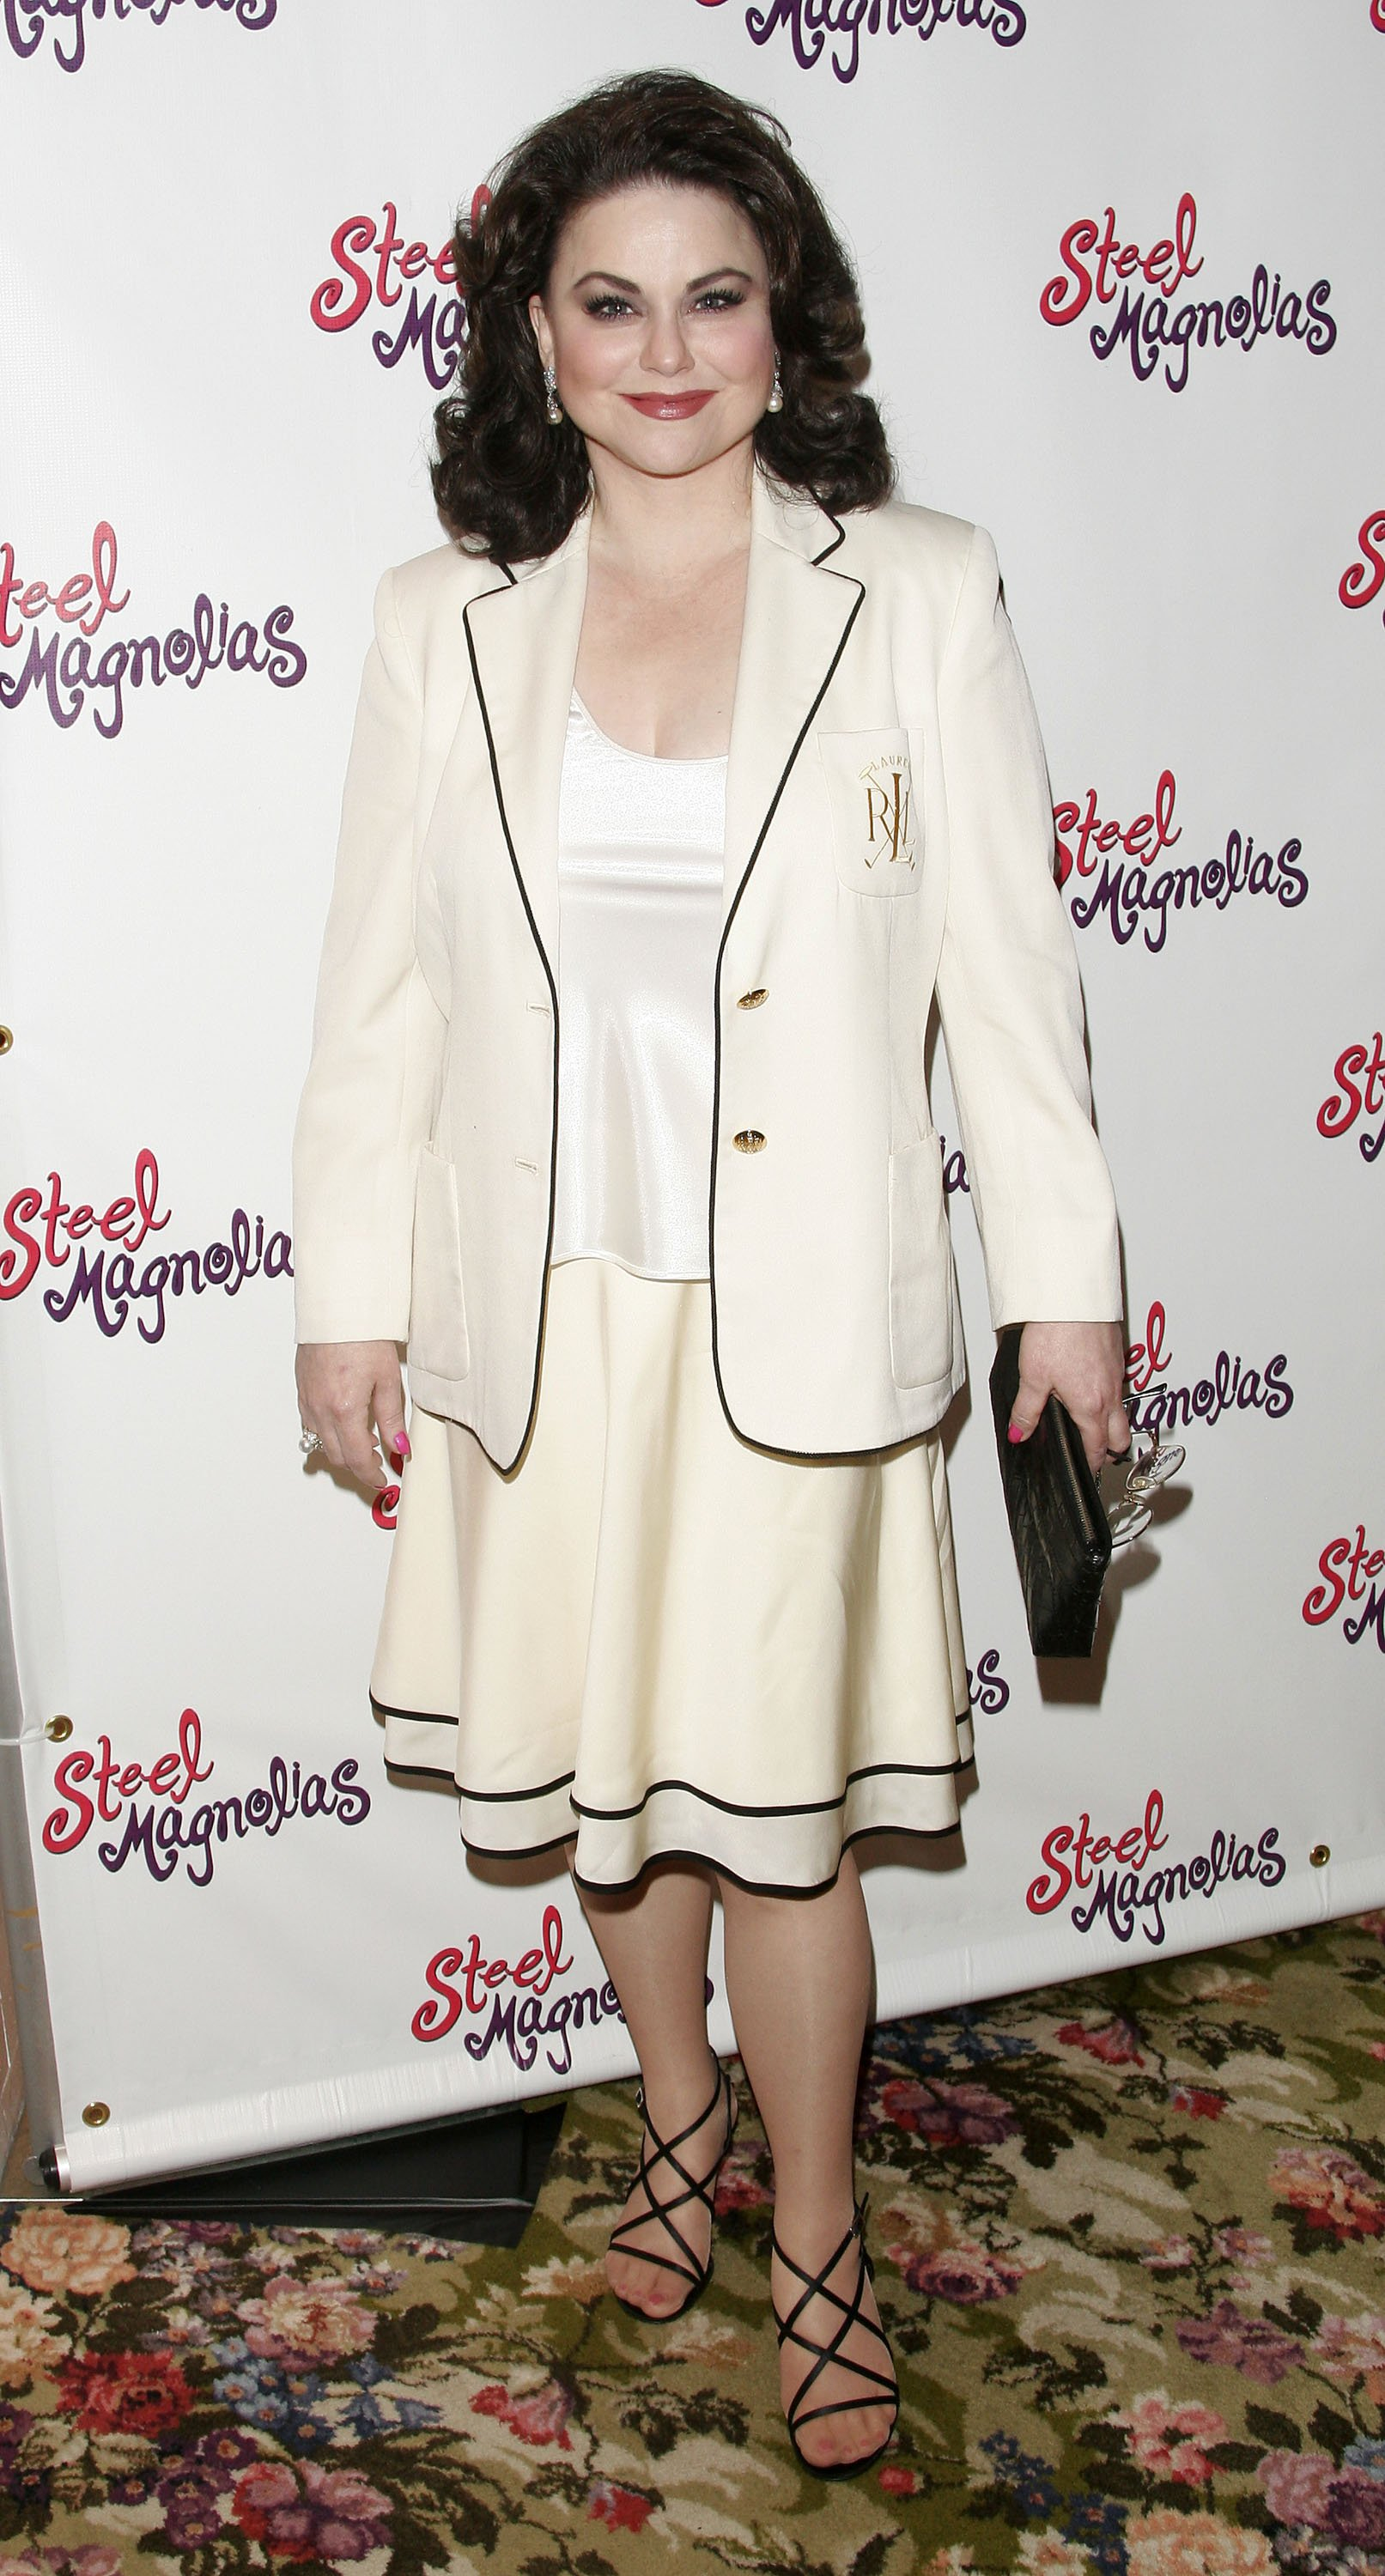 "Delta Burke during the after party for the opening night of ""Steel Magnolias"" on Broadway on April 4, 2005 in New York City. 